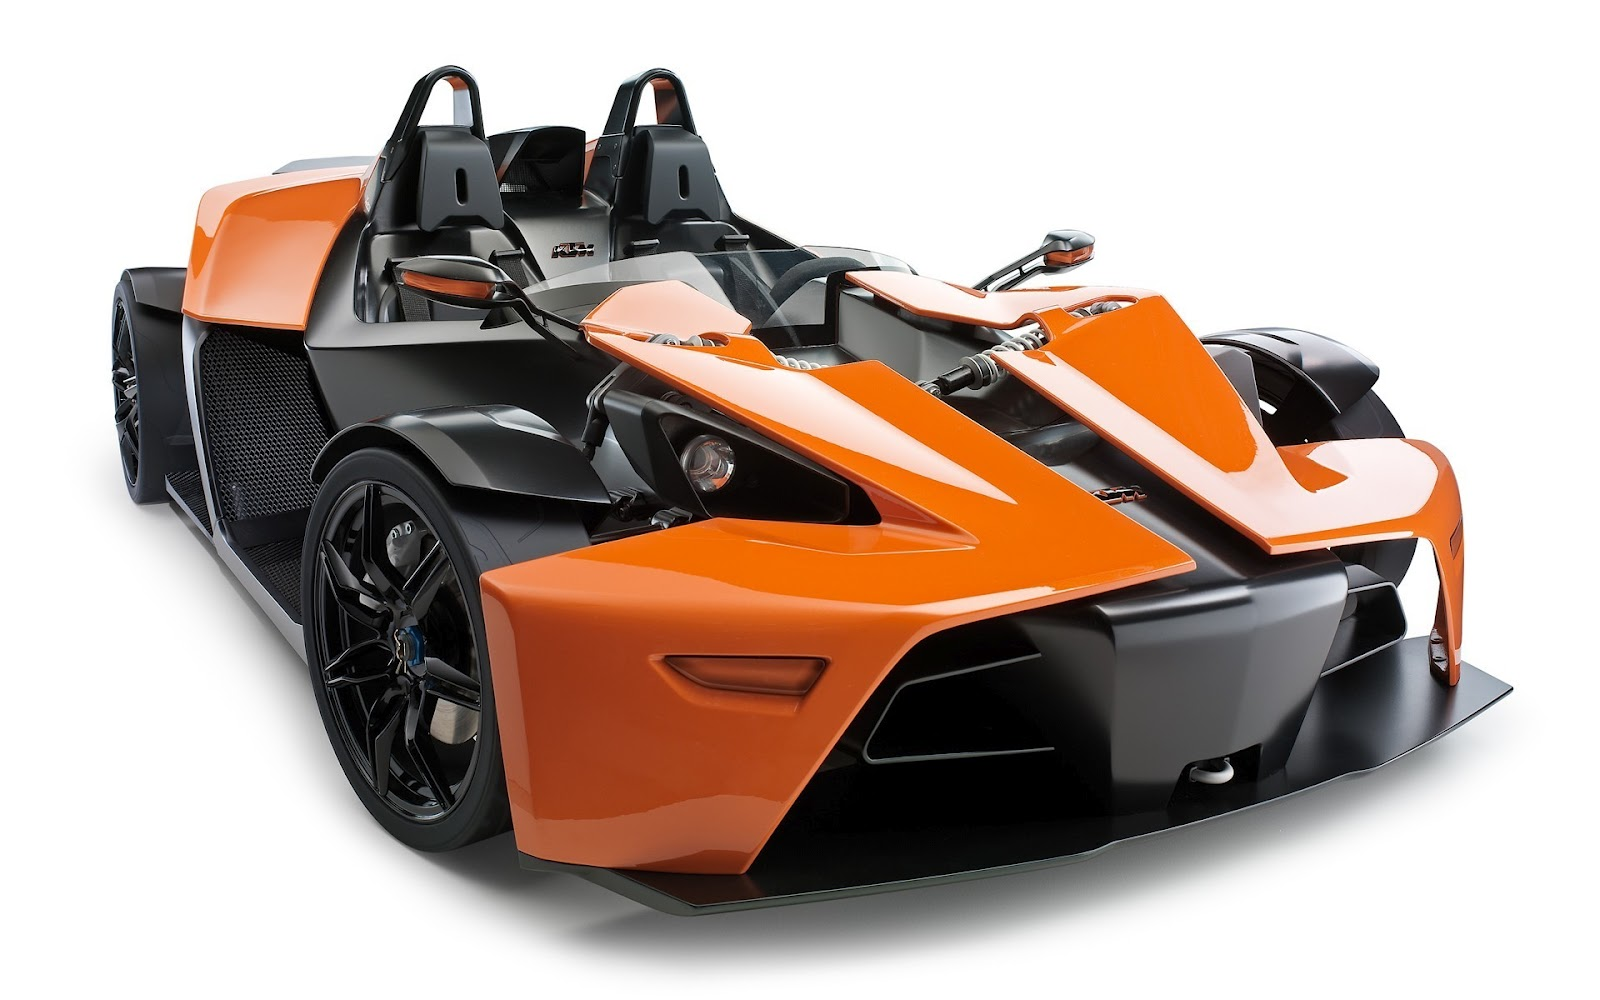 Car Images: cool cars